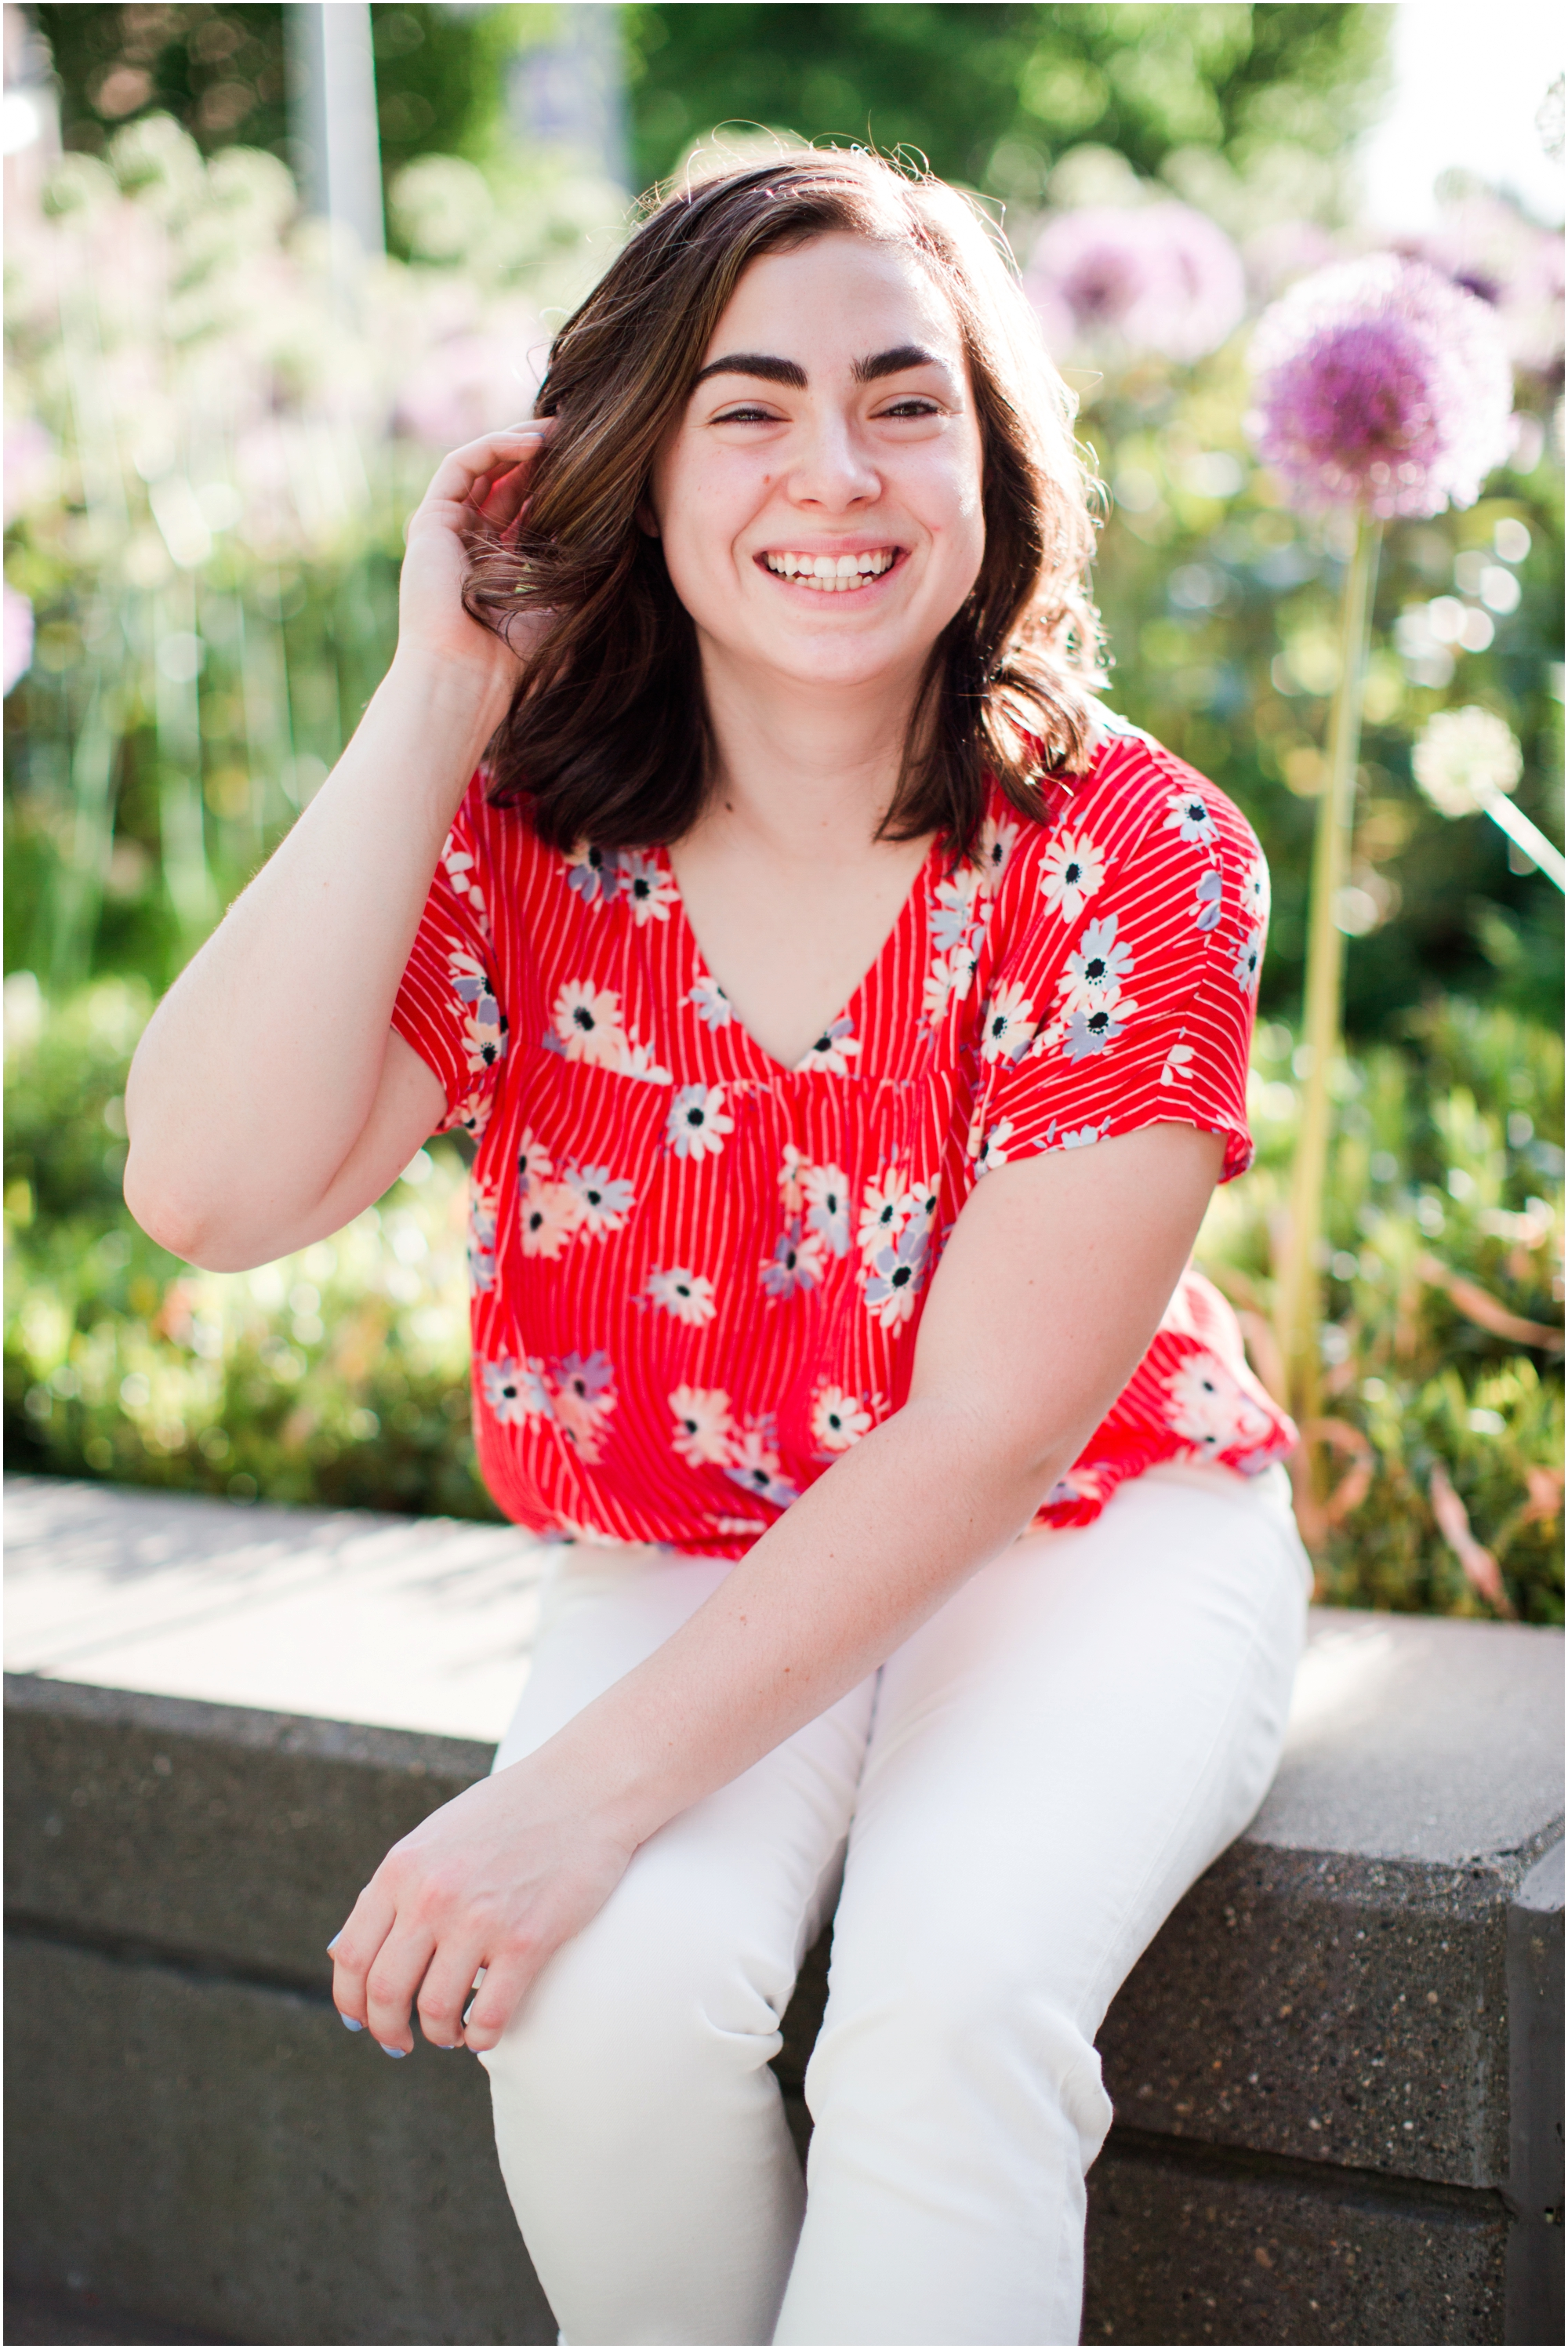 Senior portrait shoot at UW Tacoma campus and Bridge of Glass. Photos by Briana Calderon Photography based in the greater Seattle Area._1230.jpg